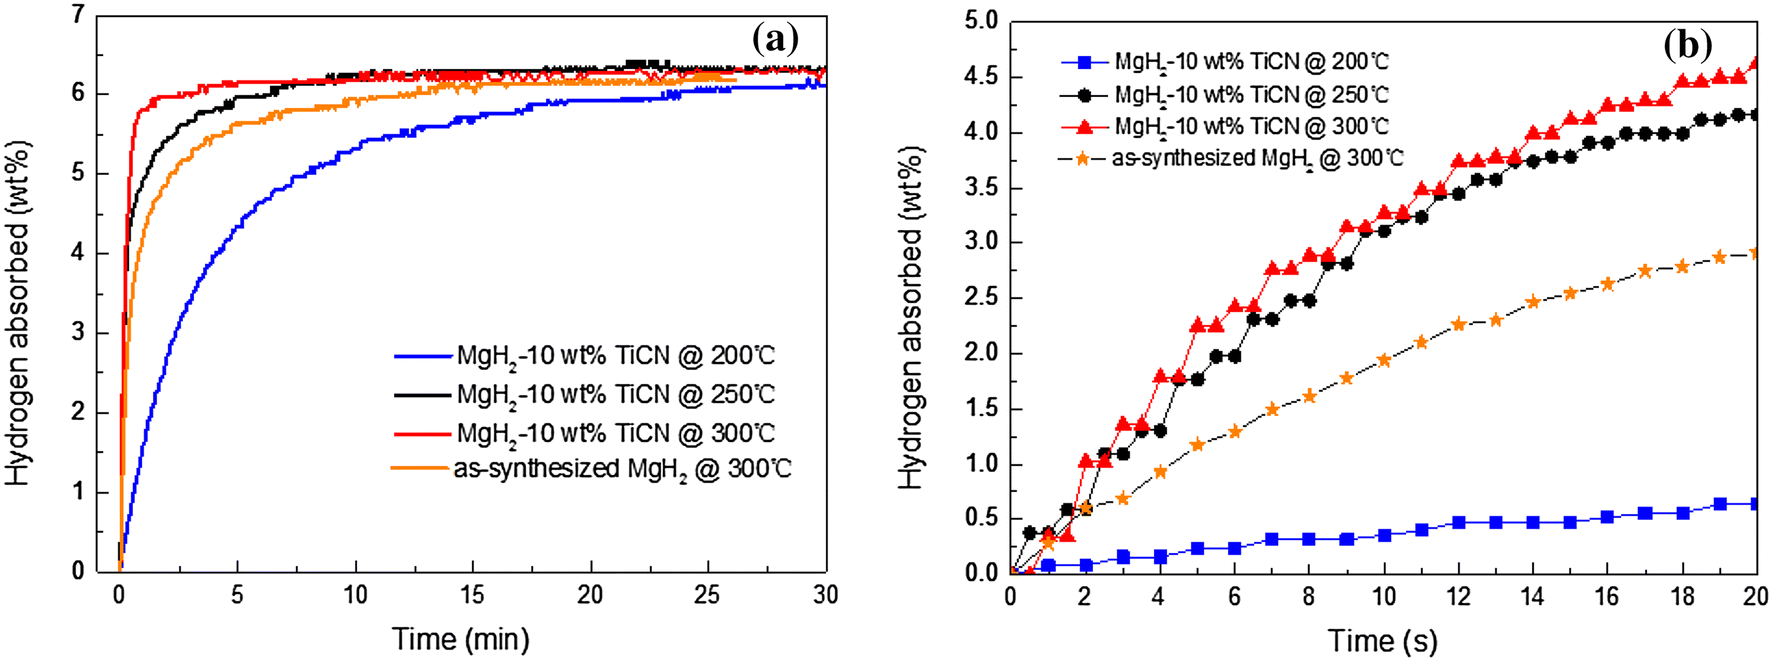 Improved hydrogen storage properties of MgH2 by the addition